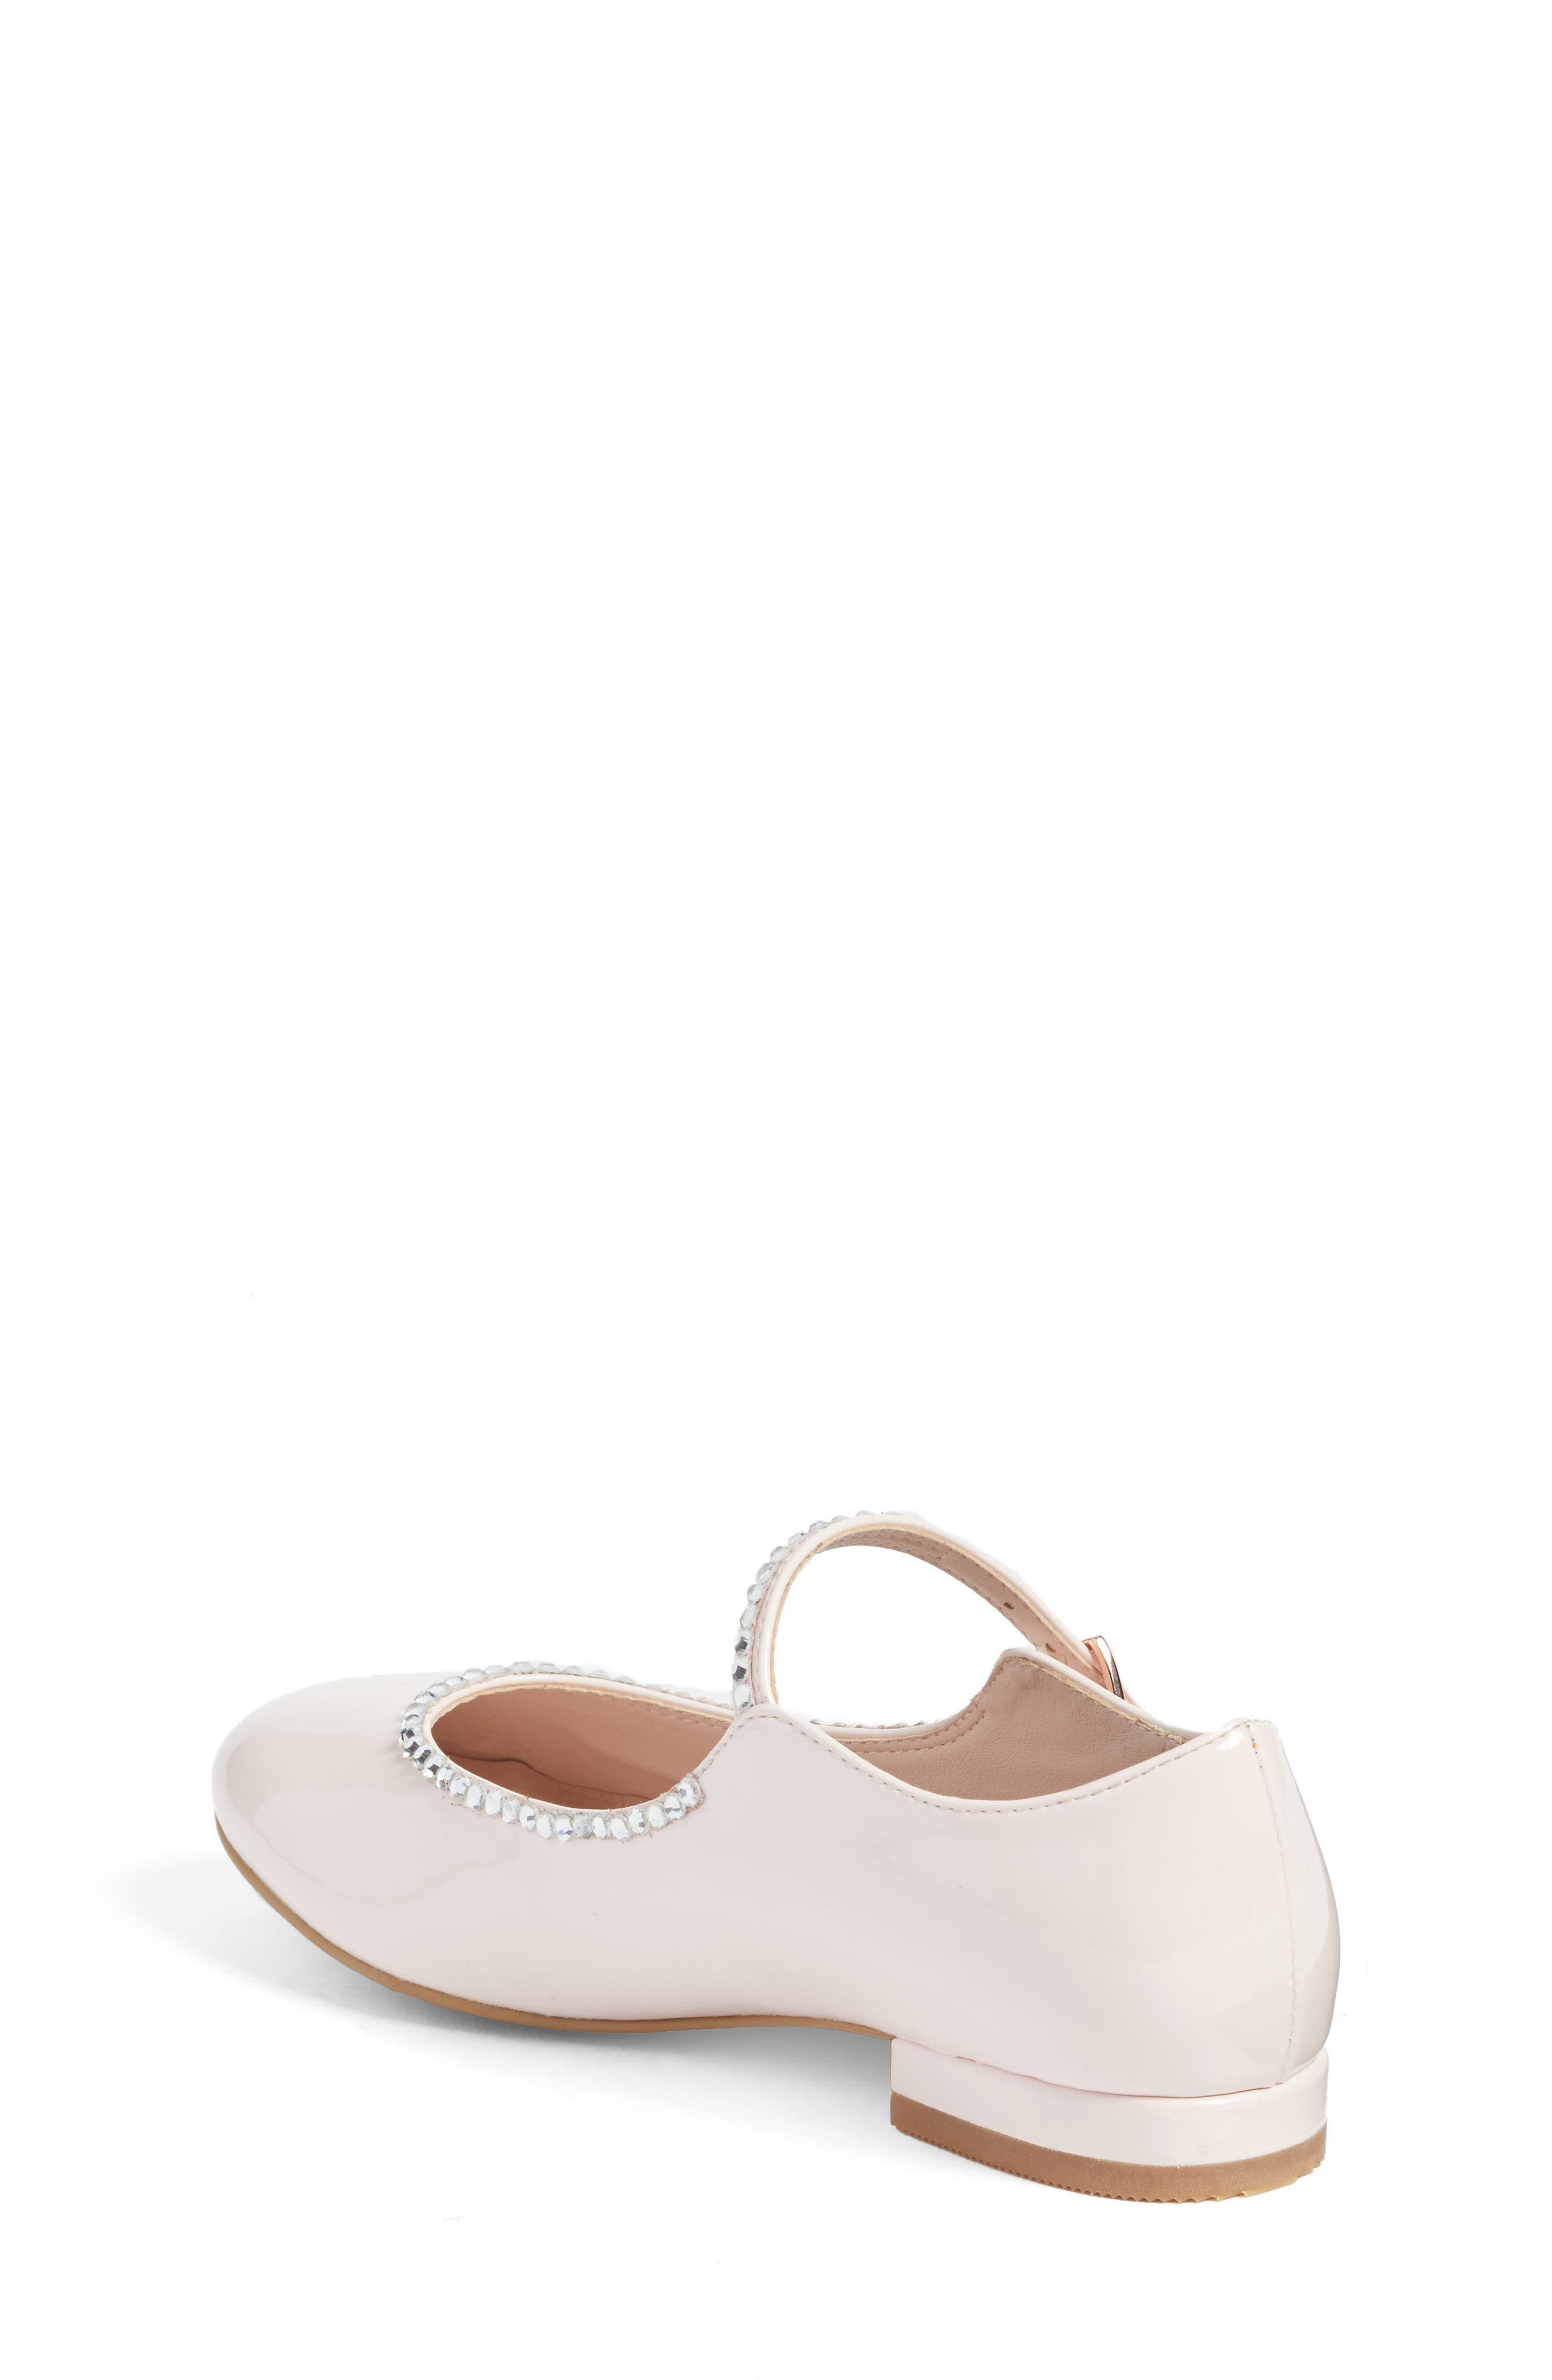 Harlow Embellished Mary Jane,                             Alternate thumbnail 2, color,                             Pale Pink Faux Patent